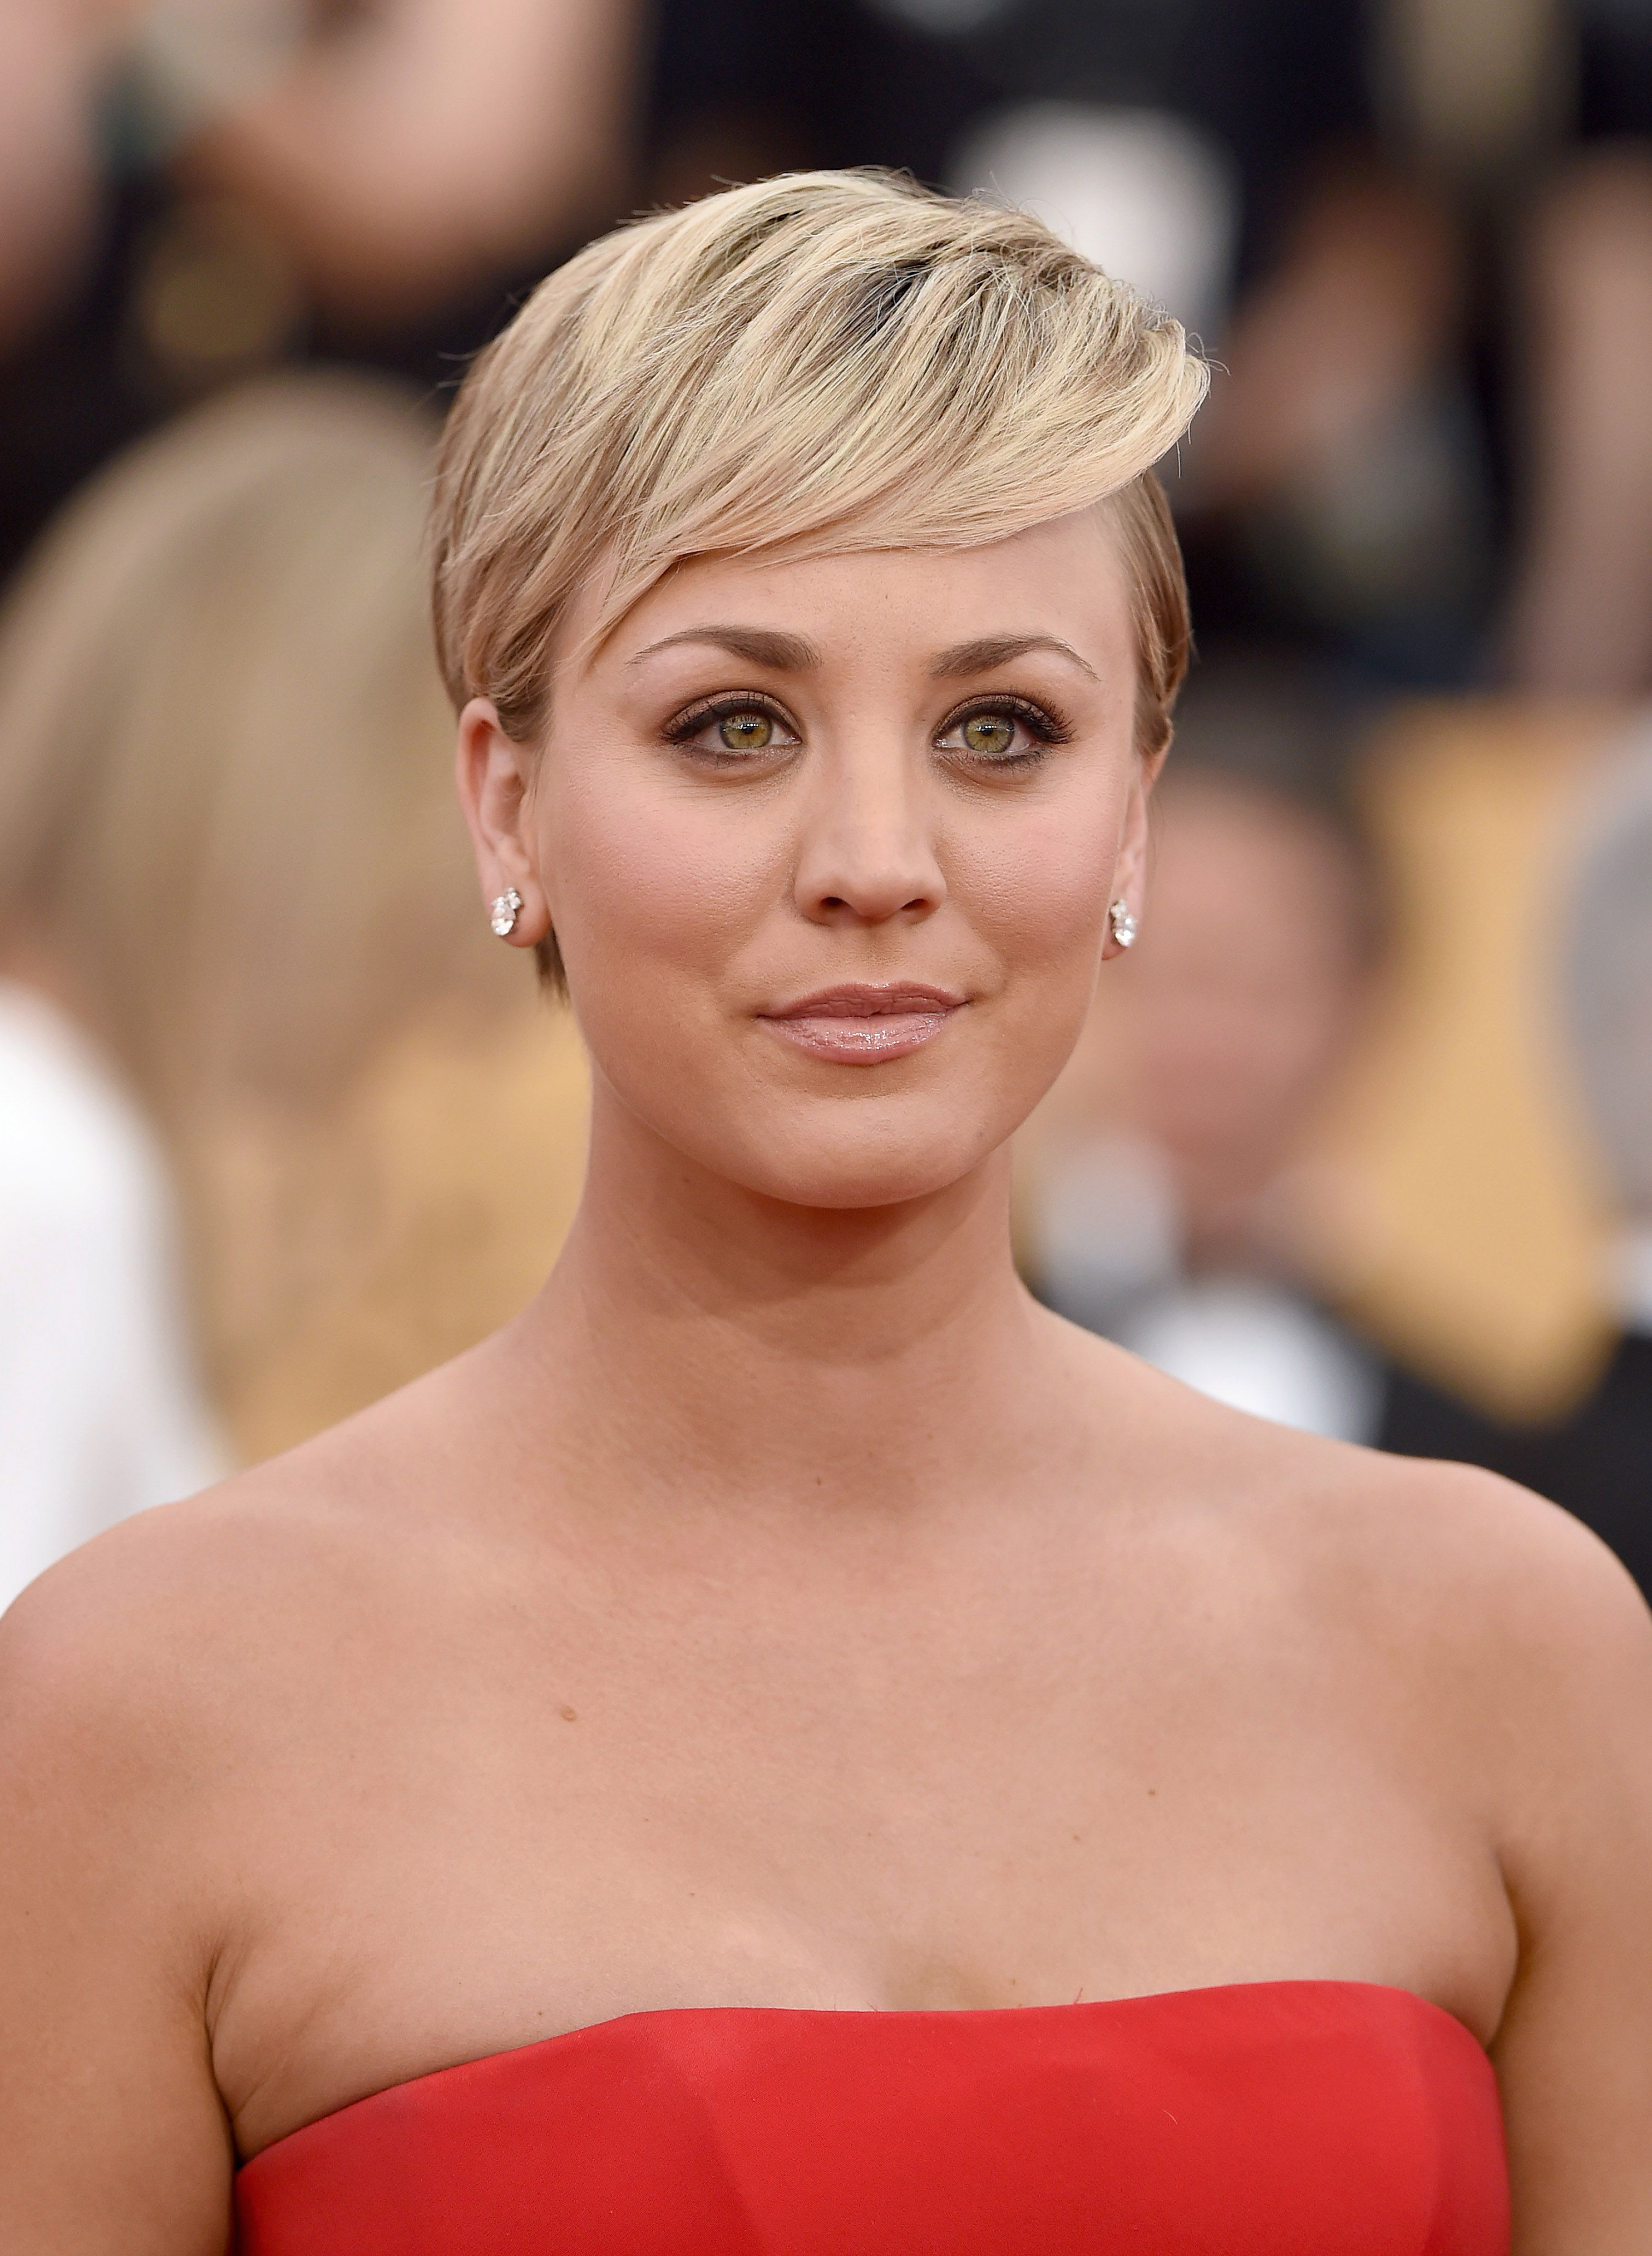 40 Best Short Pixie Cut Hairstyles 2018 – Cute Pixie Haircuts For Women In Voluminous Gray Pixie Haircuts (View 18 of 20)